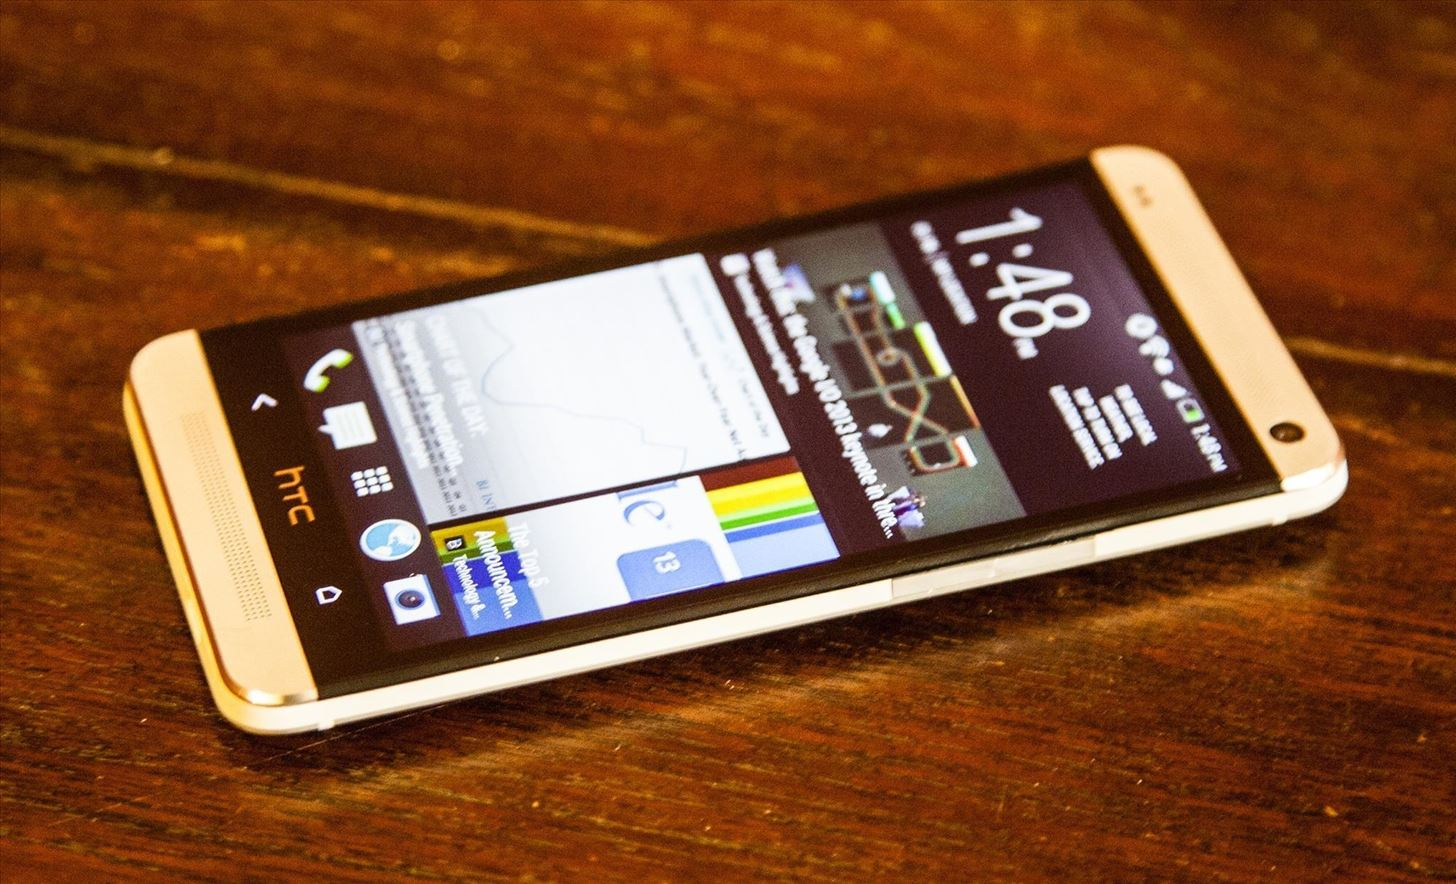 How to Remove Blinkfeed from Your HTC One for a Stock Feel Without Rooting